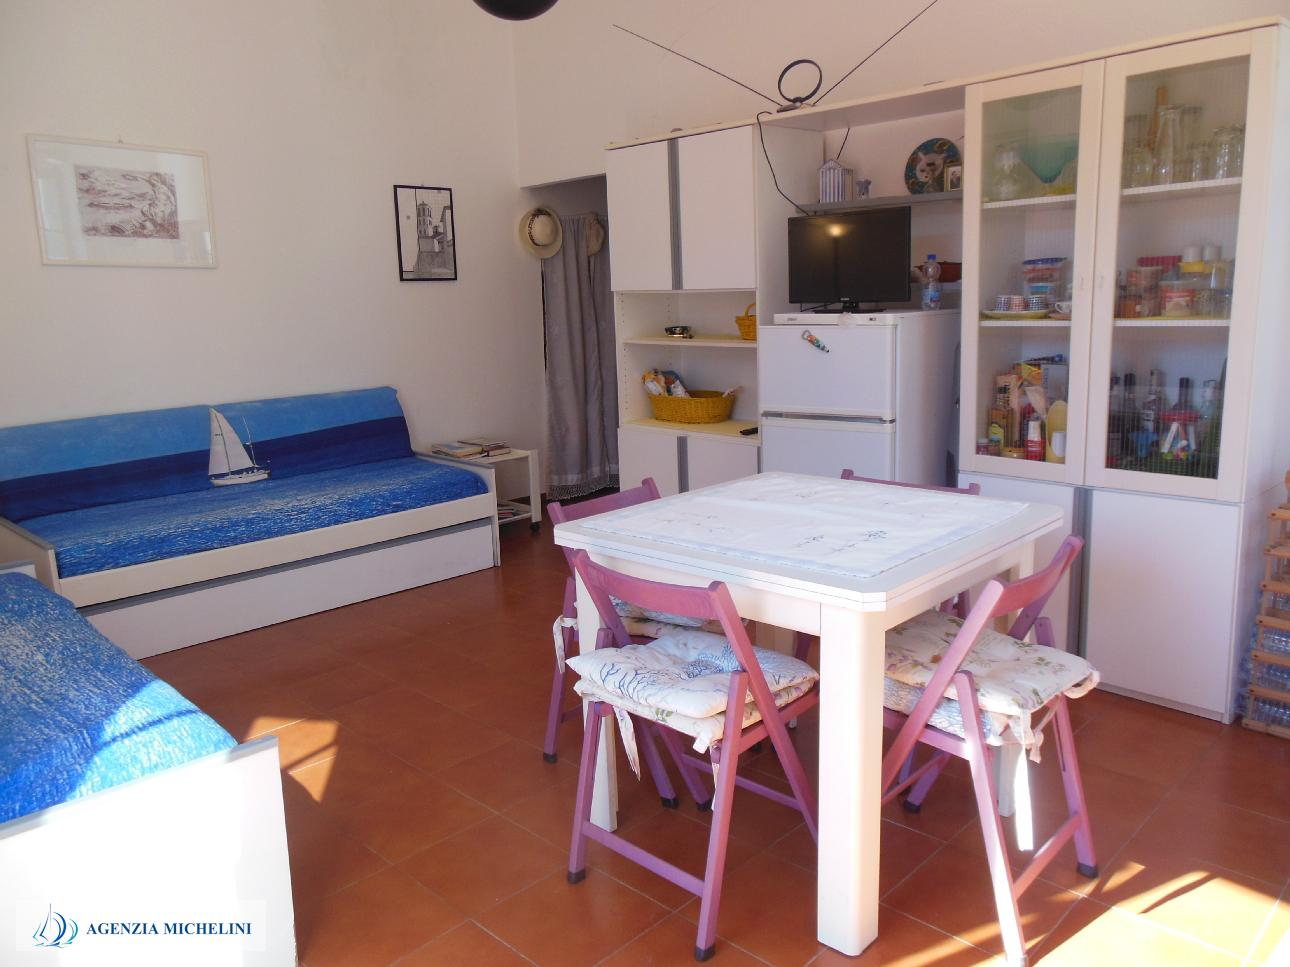 Ref. 012 - Renovated country house with beautiful living terrace in the historic centre of Levante.